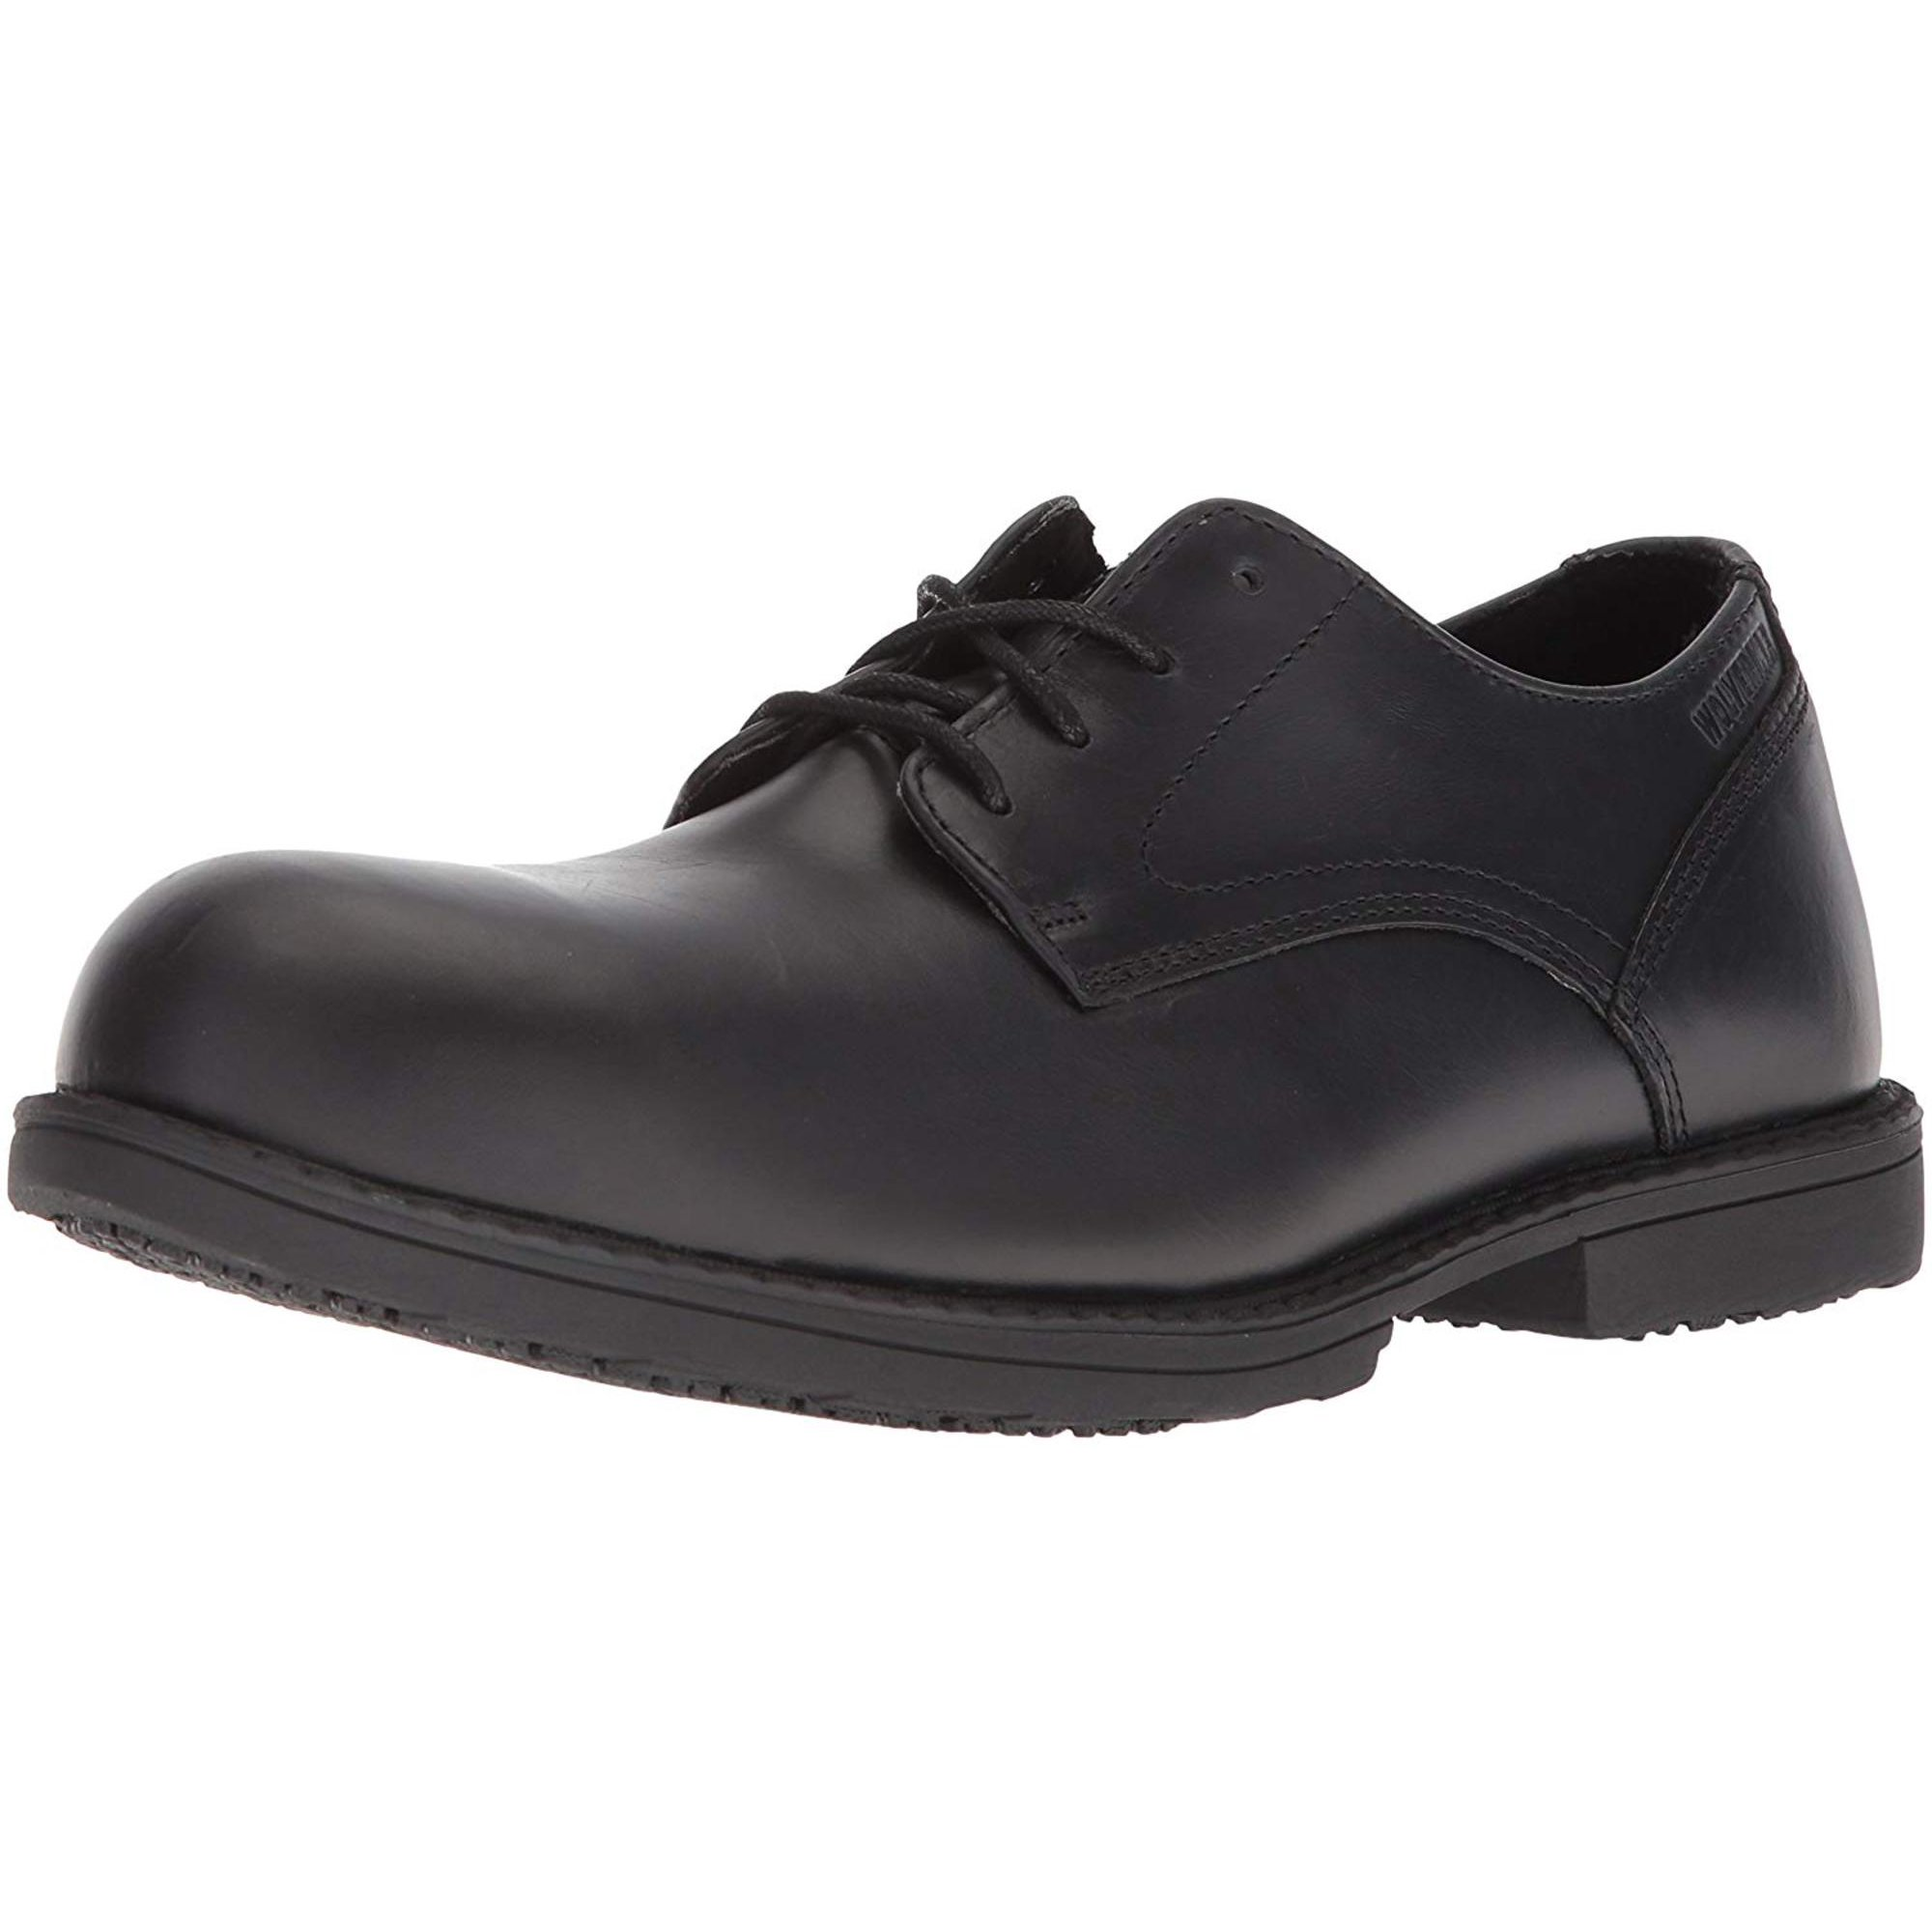 226dc53440f Wolverine Men's Bedford Steel-Toe Oxford SR Industrial Shoe ...